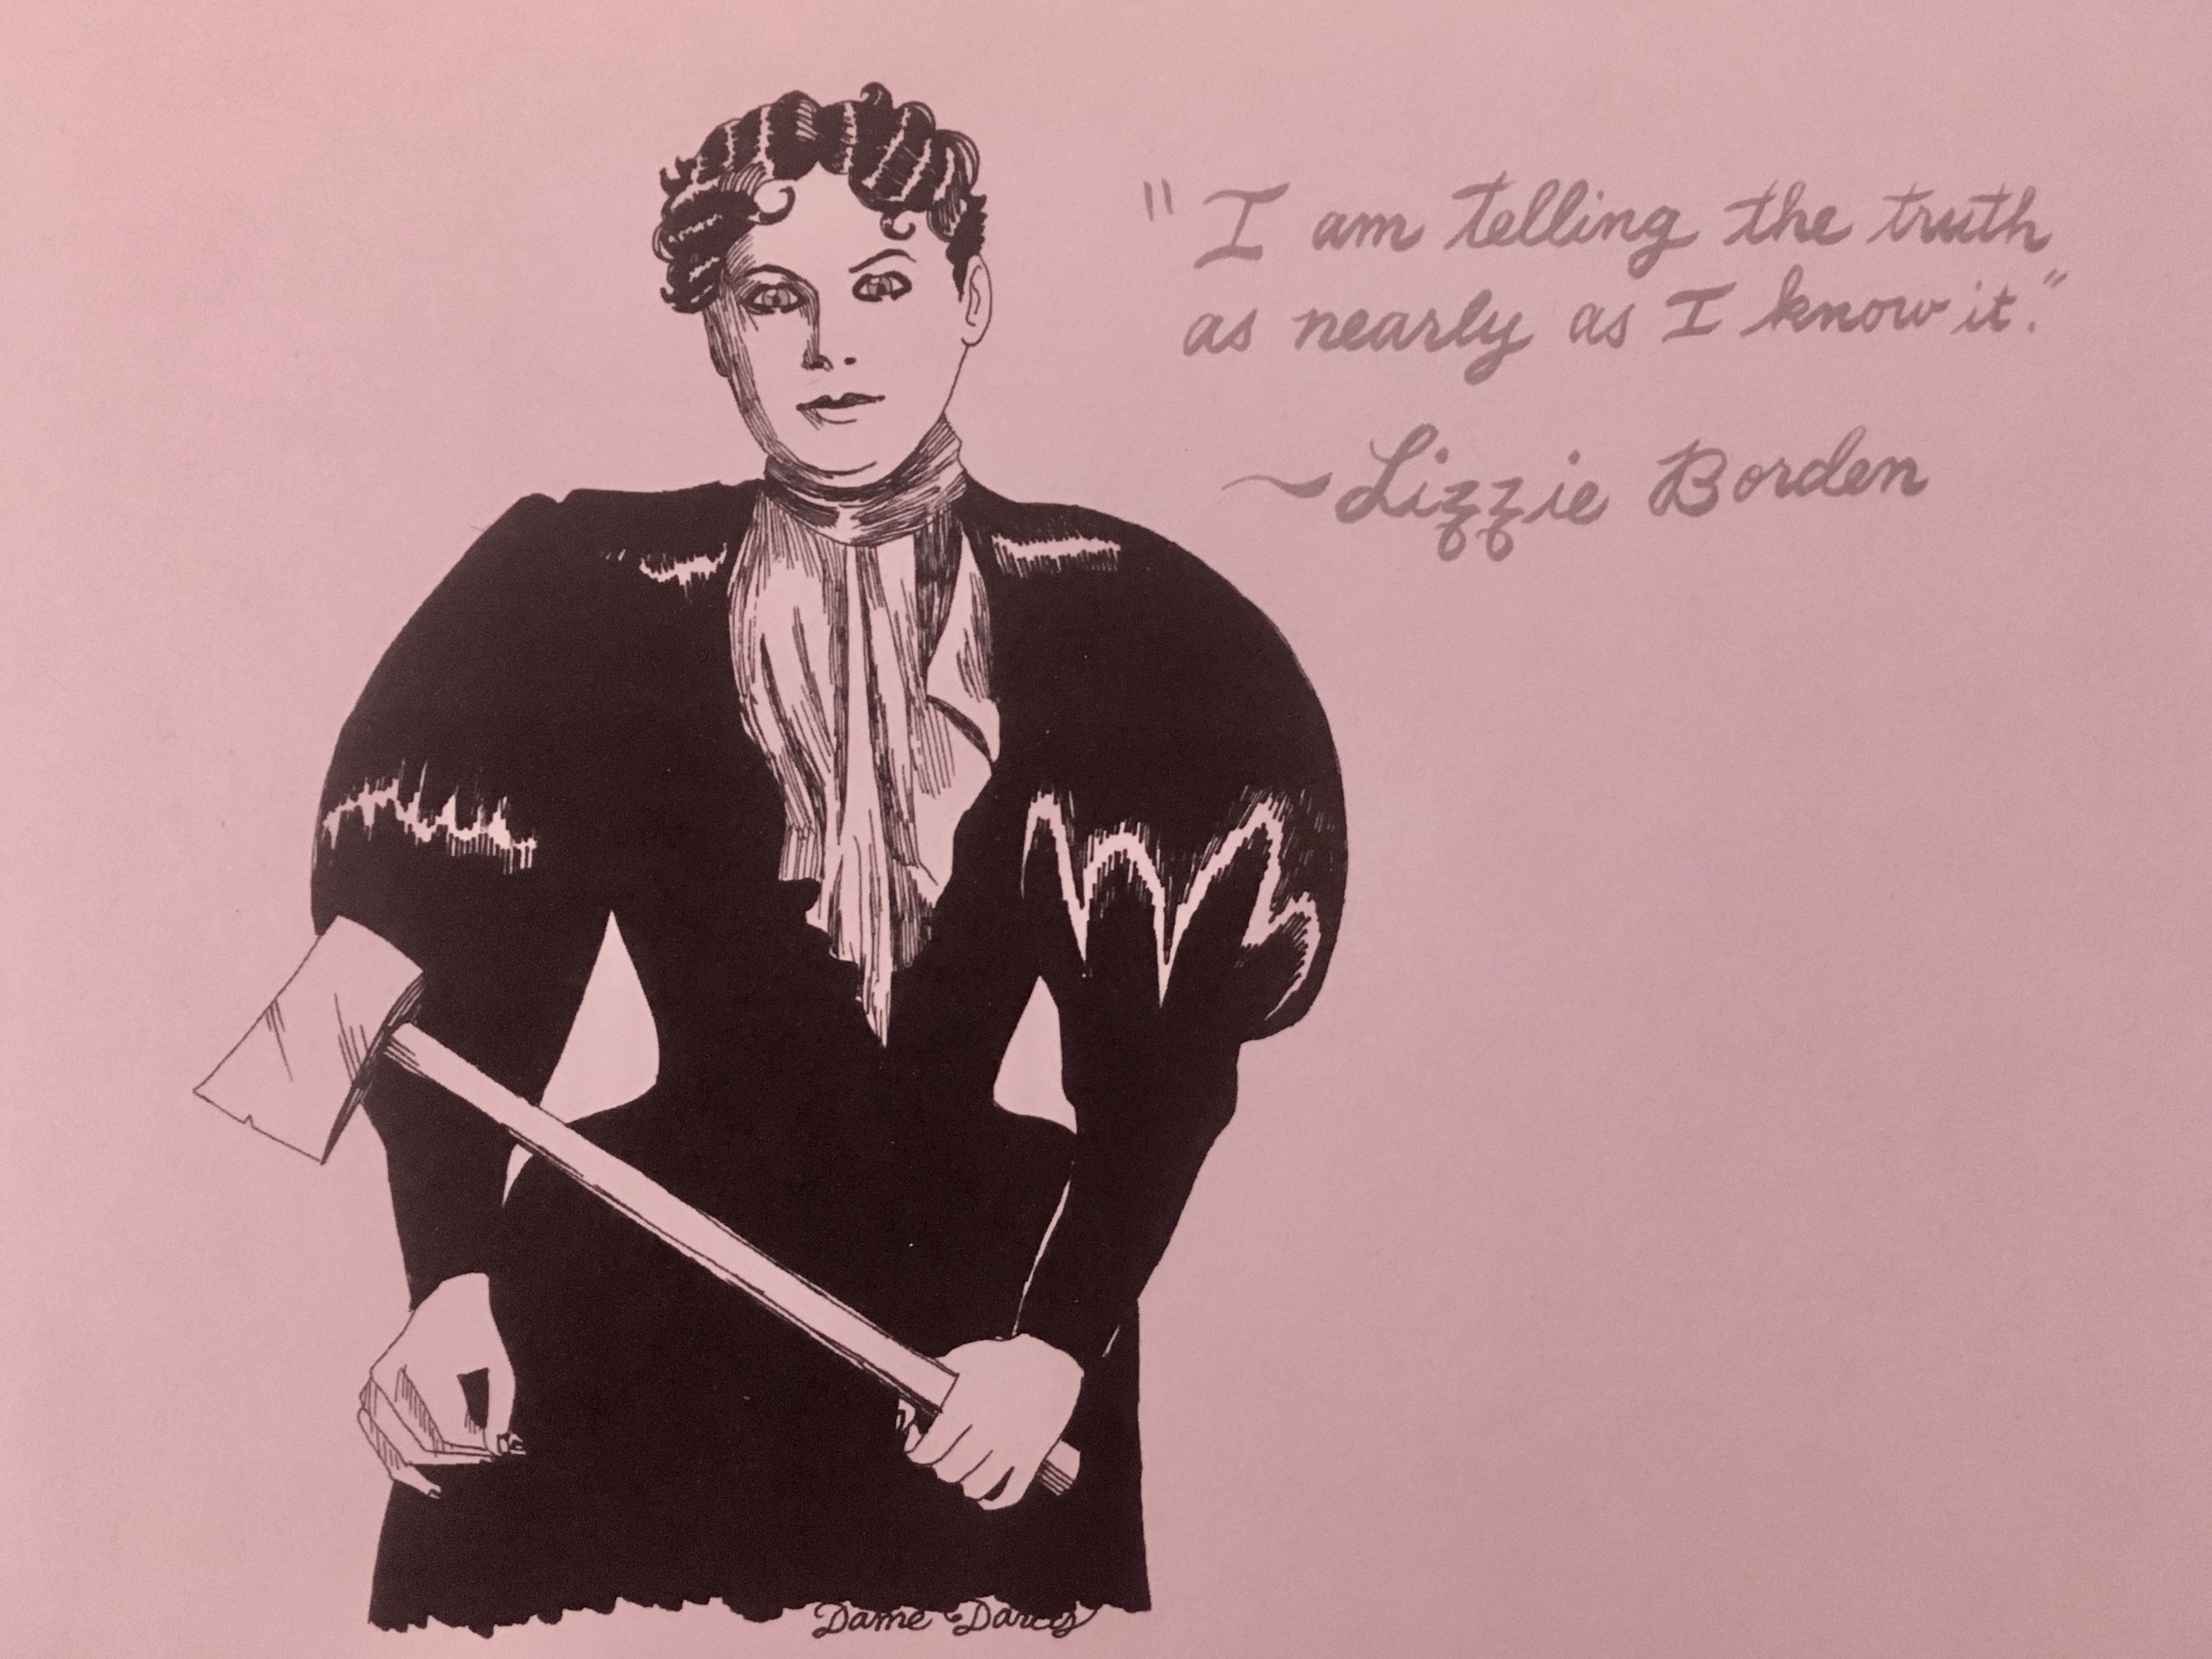 "Lizzie Borden #2 - A print of the OG alleged murderess, Lizzie Borden, the subject of Criminal Broads episode 10. Did she or didn't she?! 5.5"" x 8.5"". $8 + $2 shipping. Buy on Etsy, or send $10 and your shipping address via Venmo (@tori-telfer), or Paypal/ChaseQuickpay (toritelfer@gmail.com)."